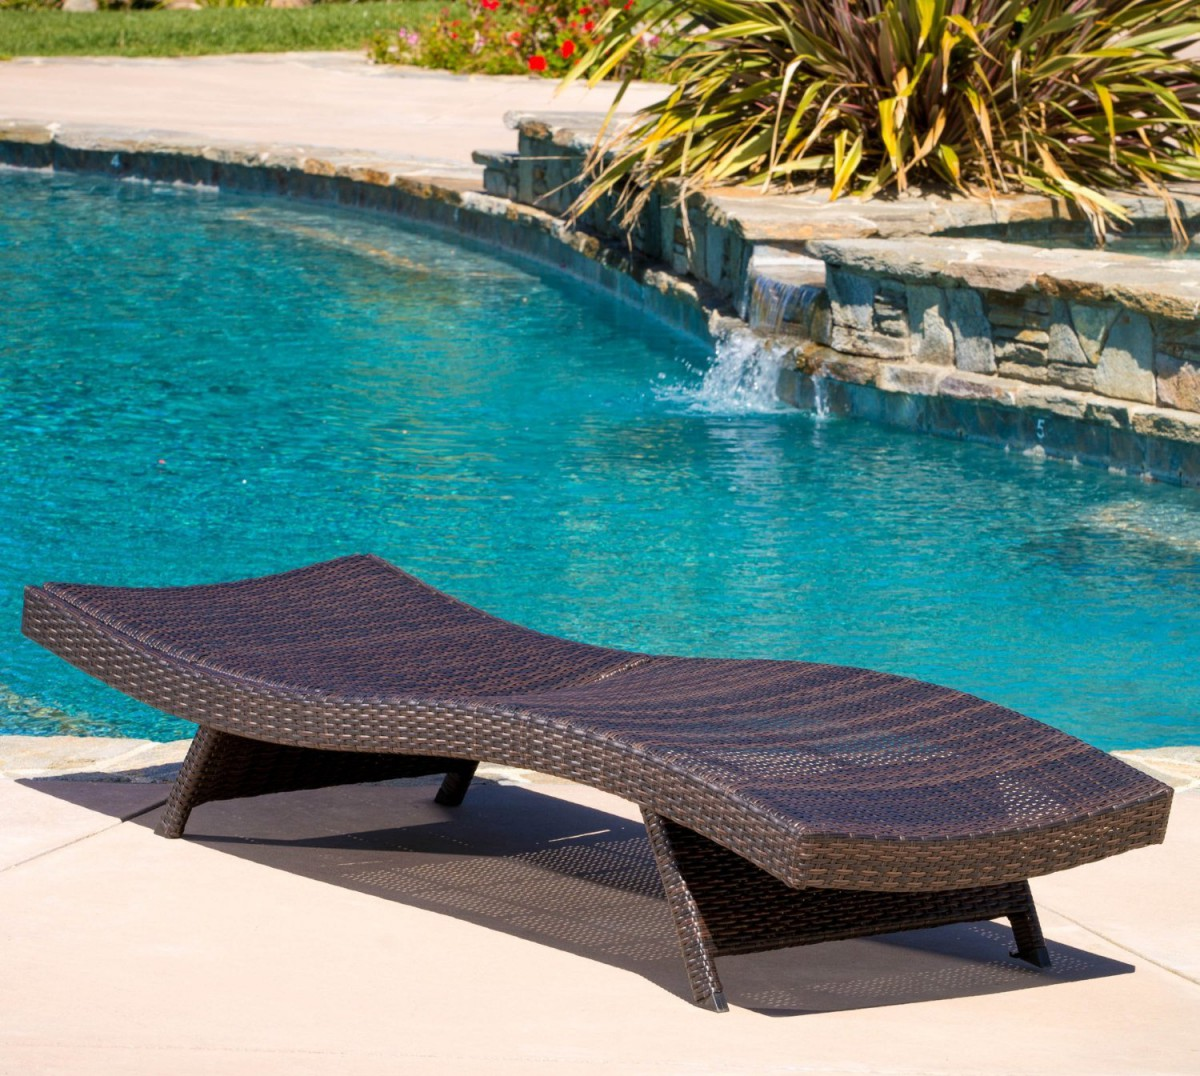 Folding outdoor lounge chair - Lakeport Folding Wicker Outdoor Chaise Lounge Chair